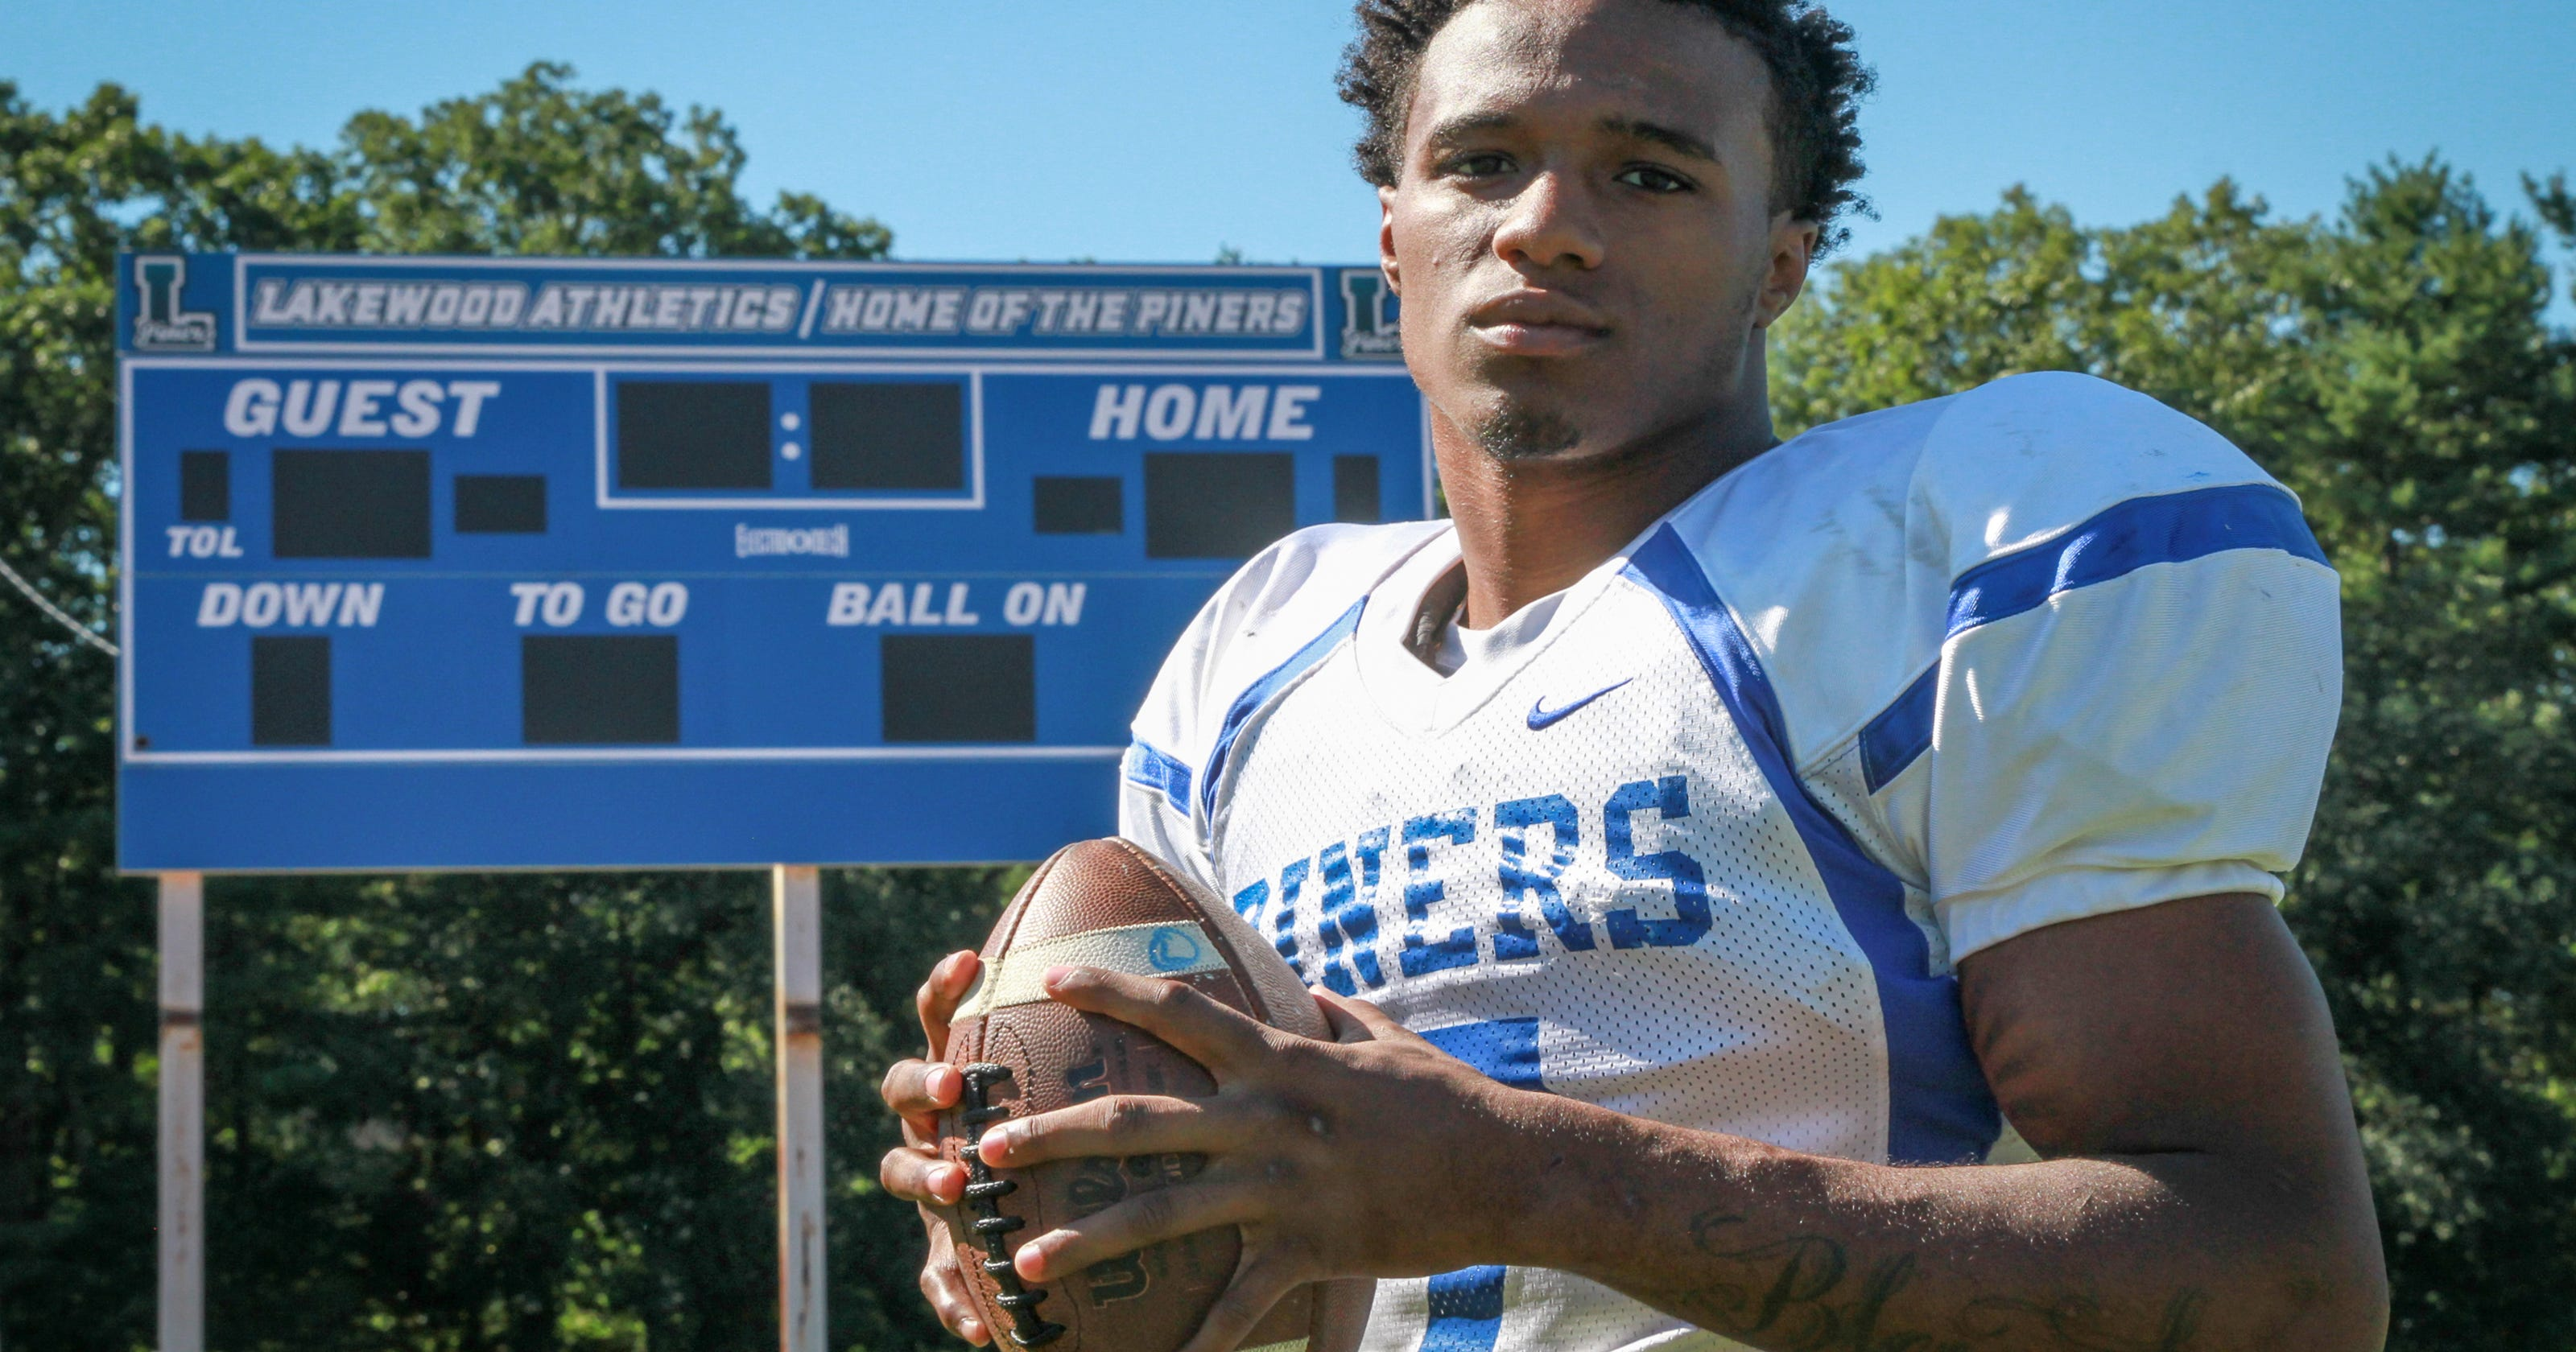 Lakewood's Tyler faced tough road to reach his goals